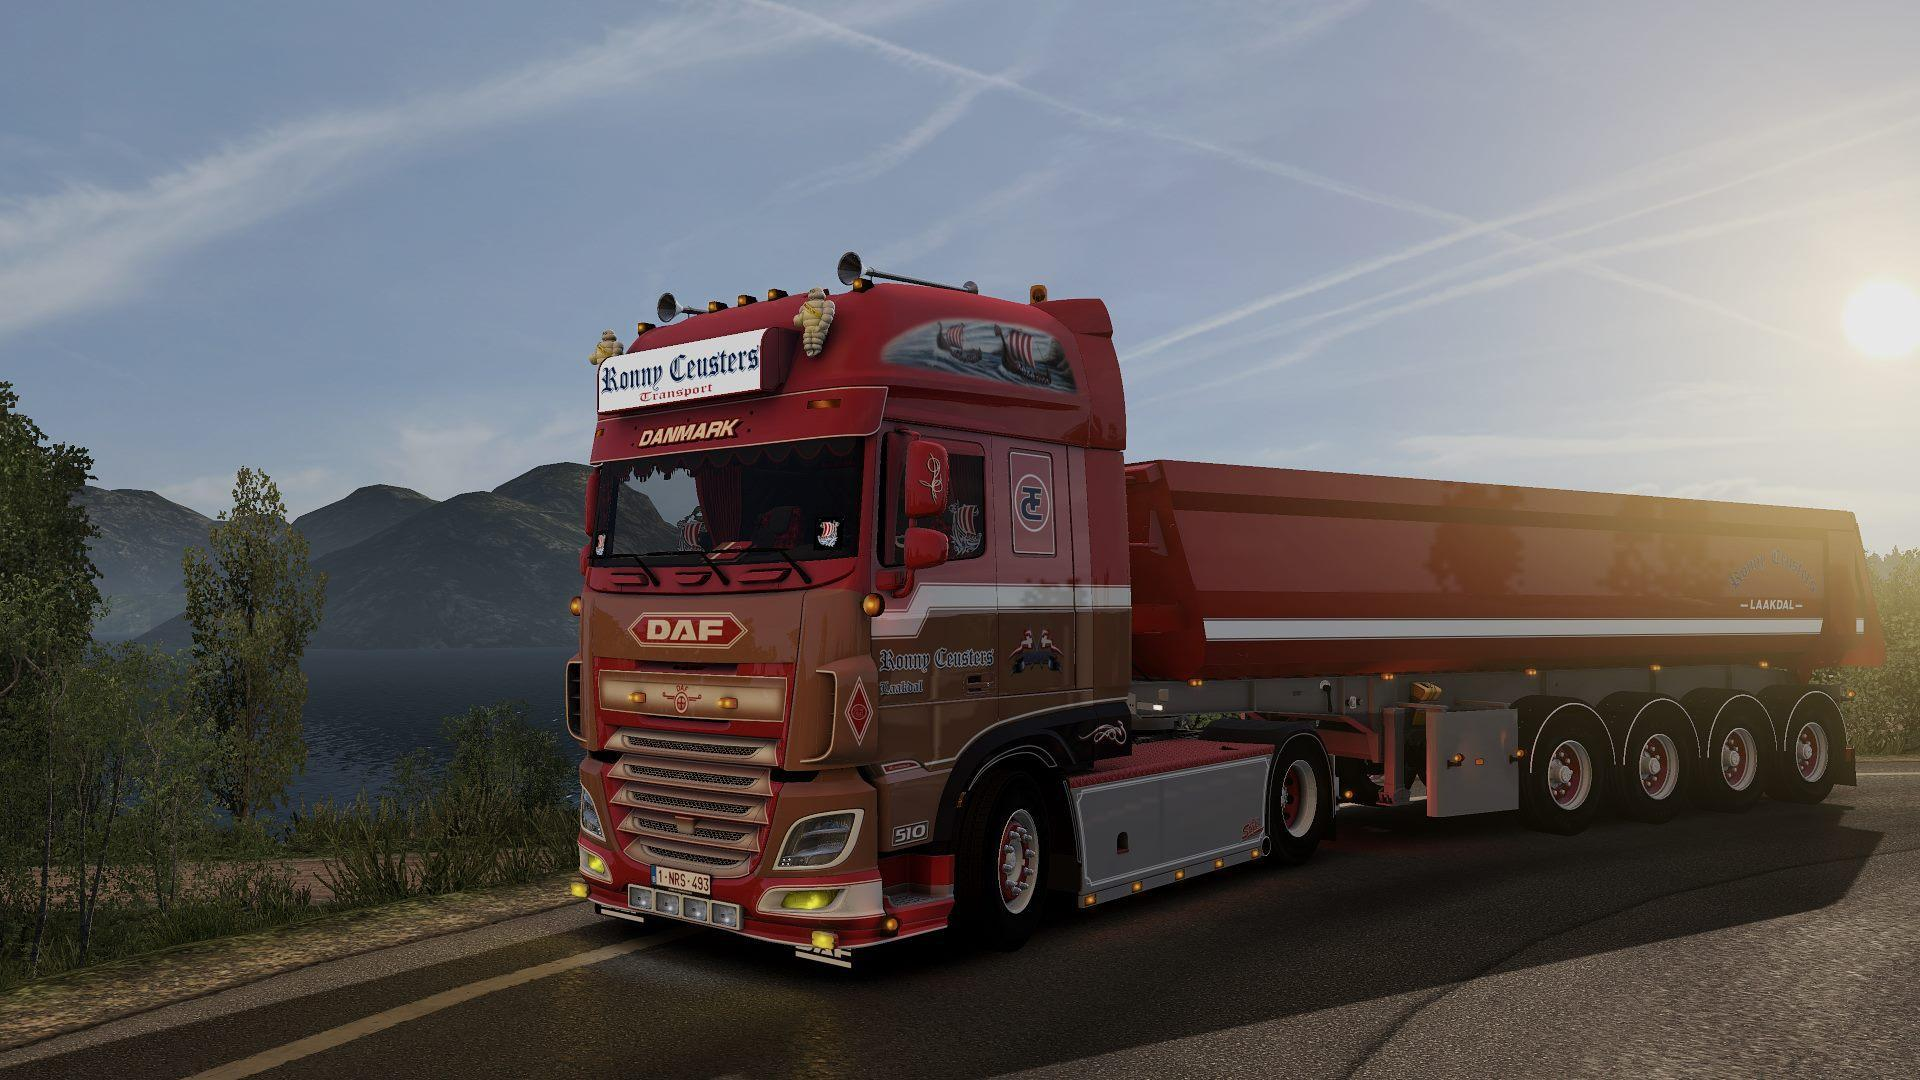 Daf Ronny Ceusters Transport & Trailer 1 34 - Modhub us